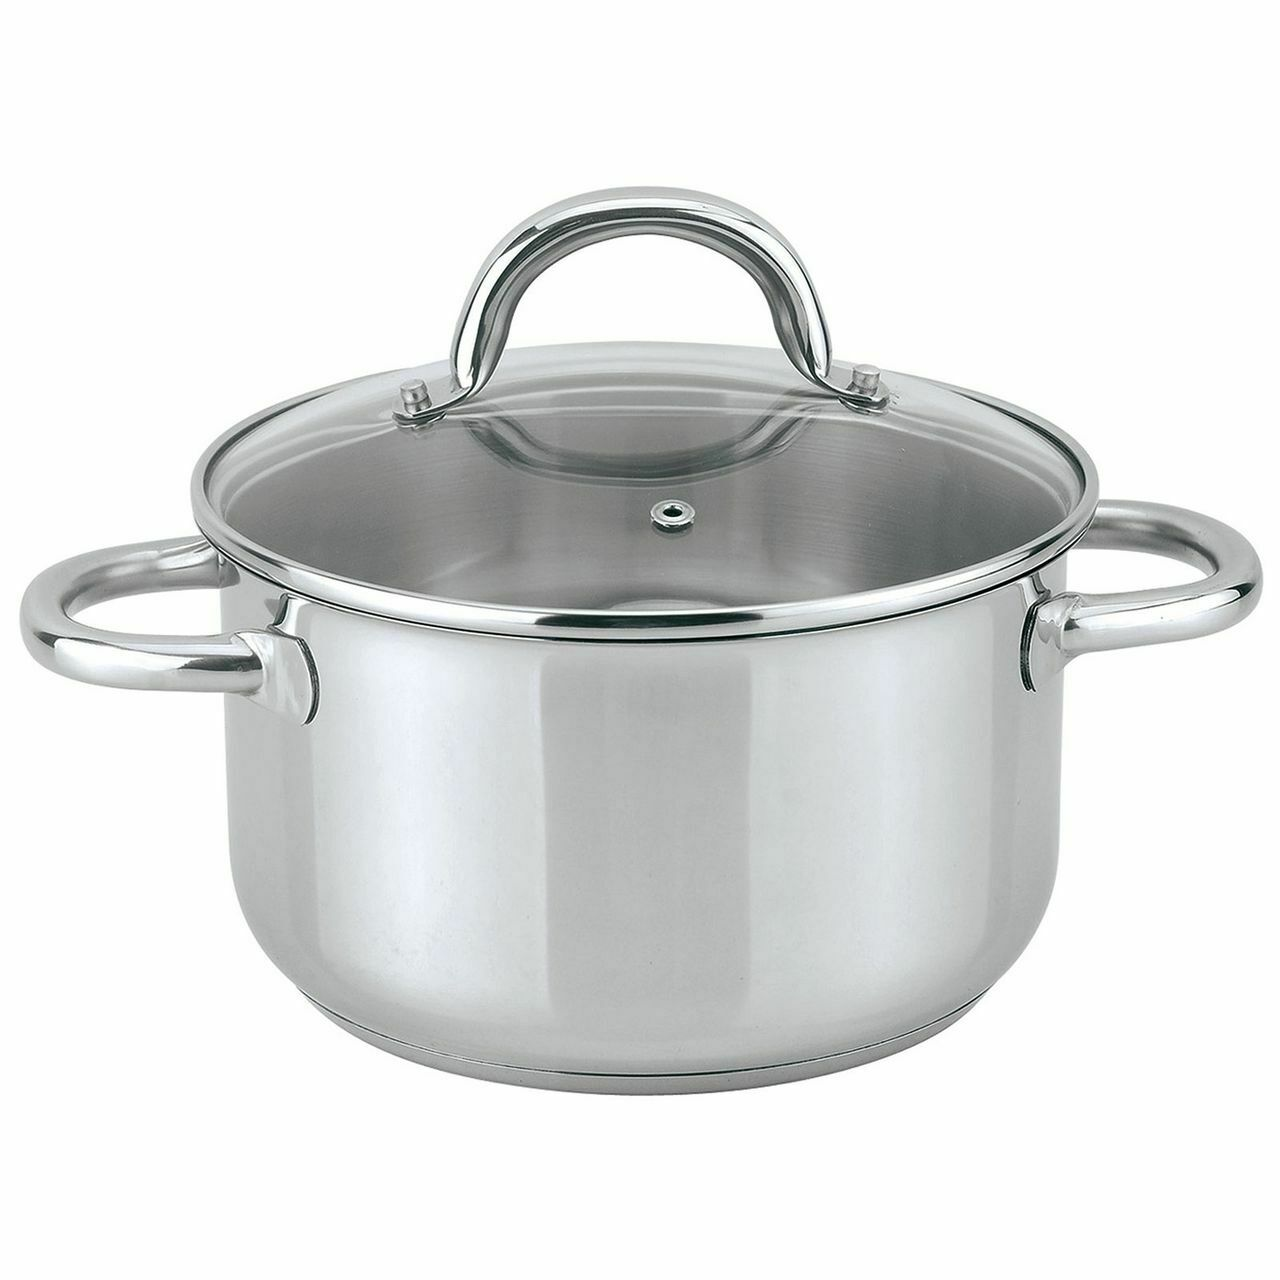 Ssw Induction Saucepan with Lid, Stainless Steel, Ø 24 cm, 6,1 L